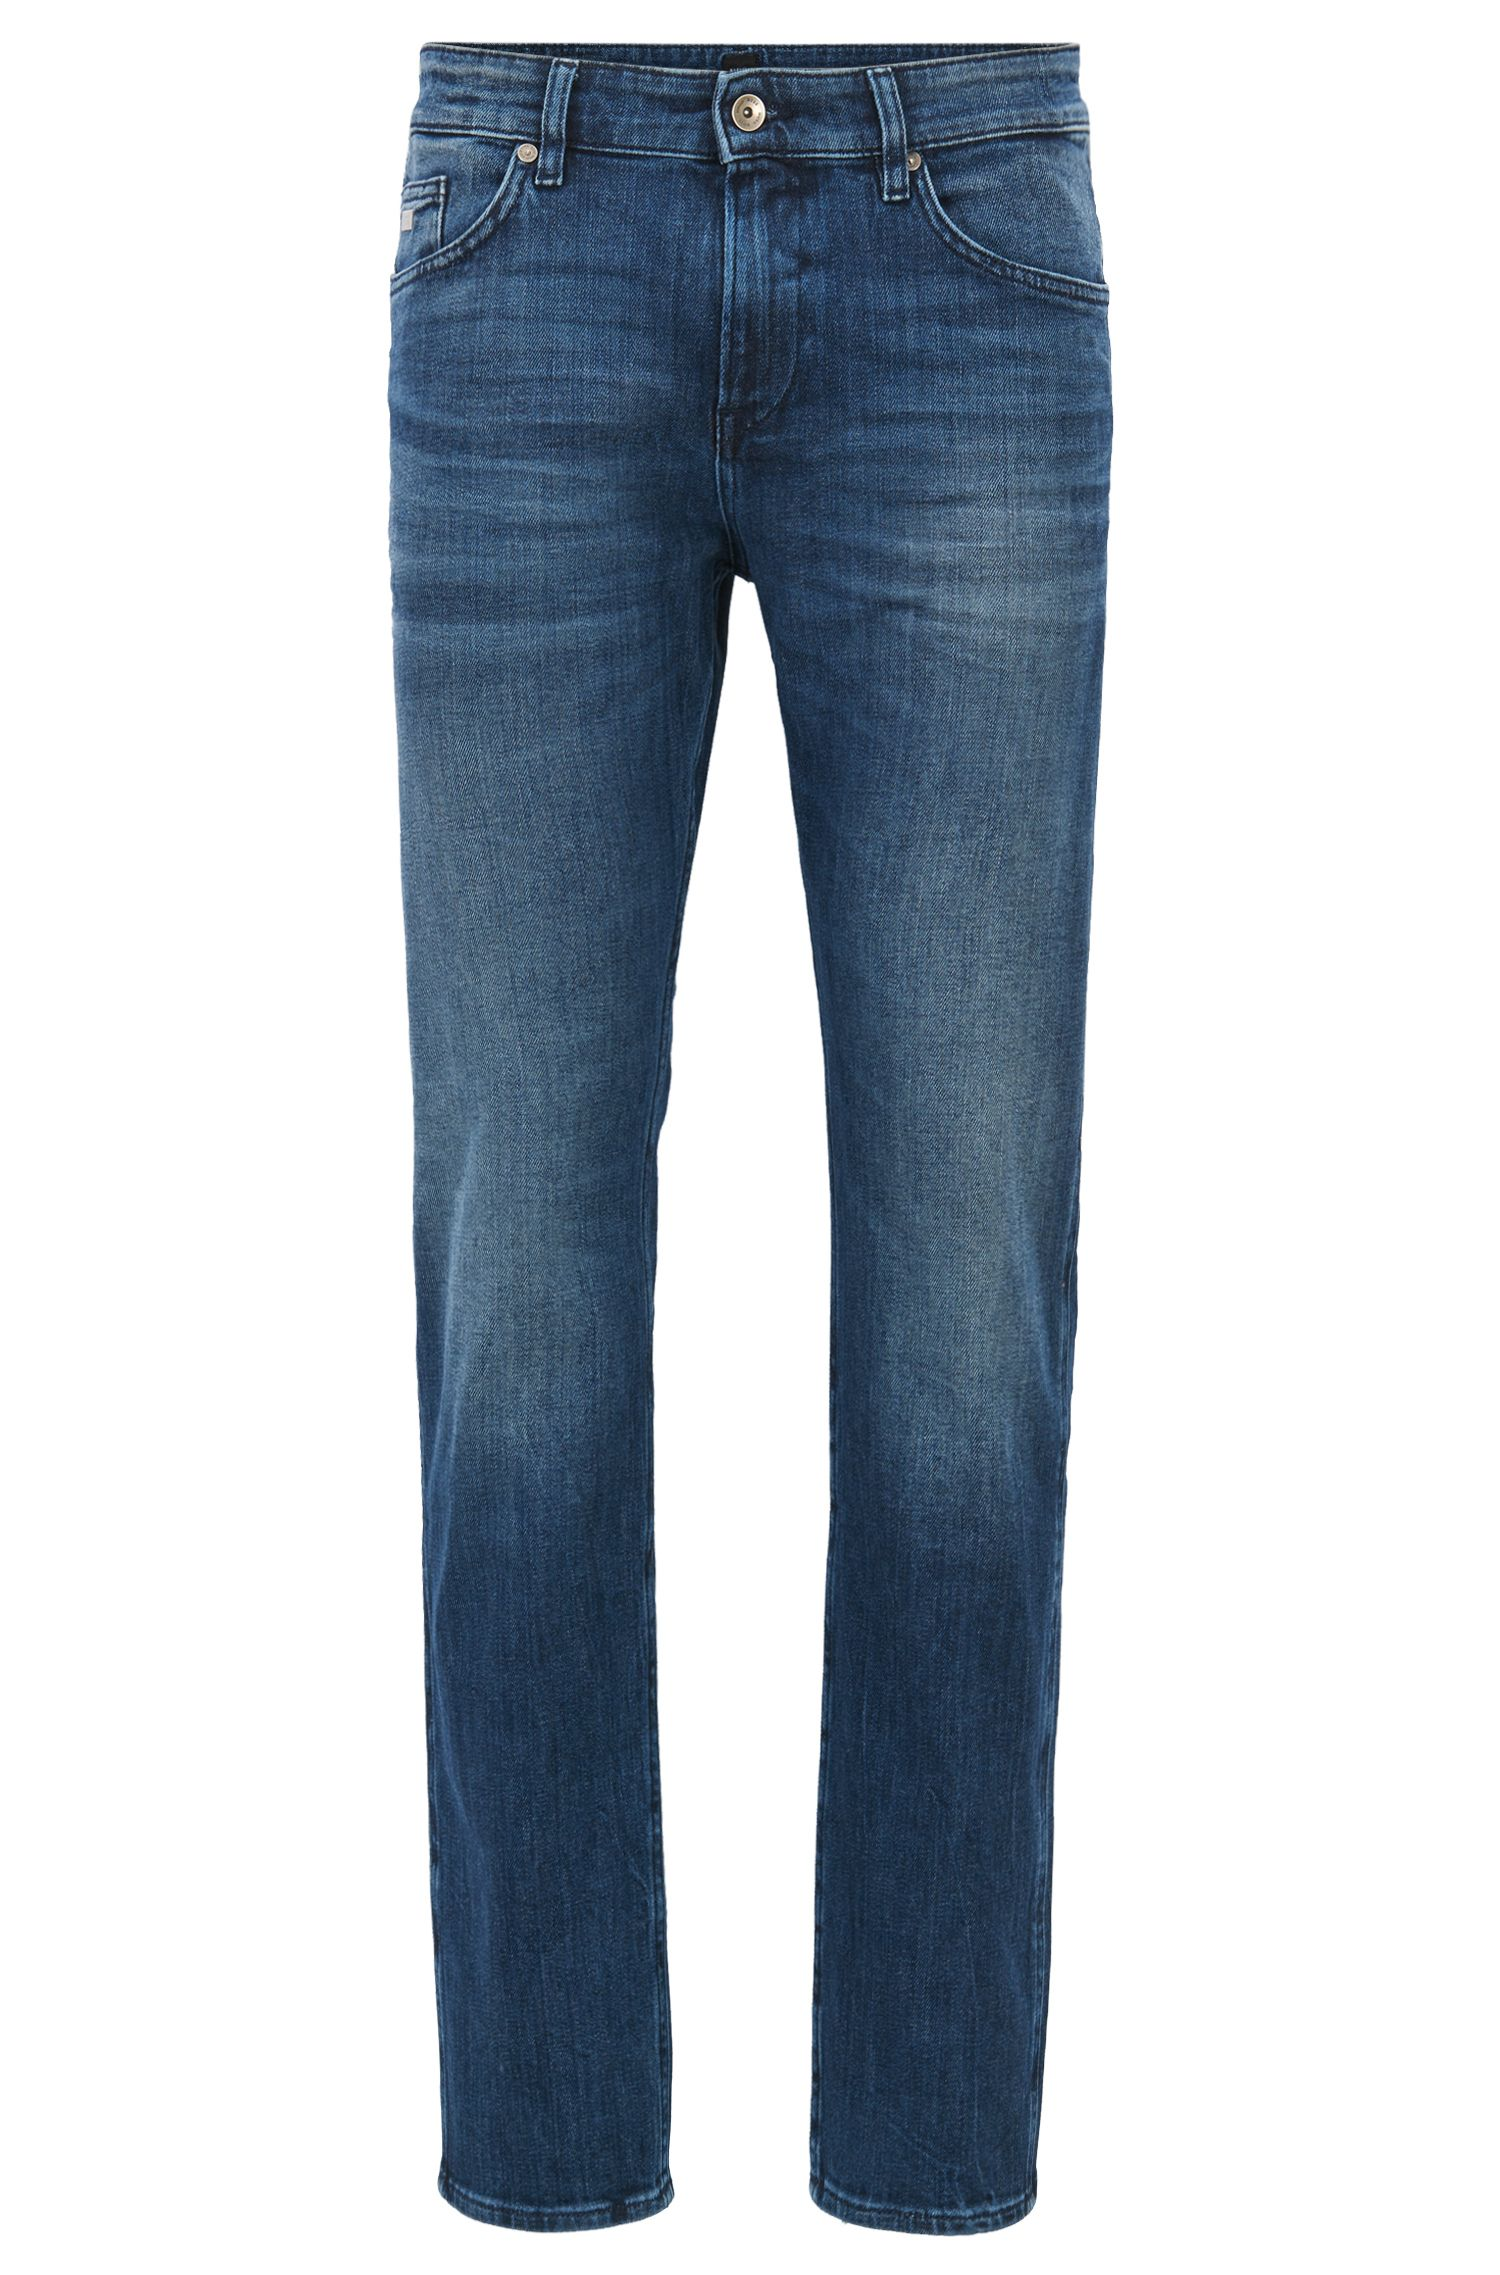 11 oz Stretch Cotton Jean, Slim Fit | Delaware